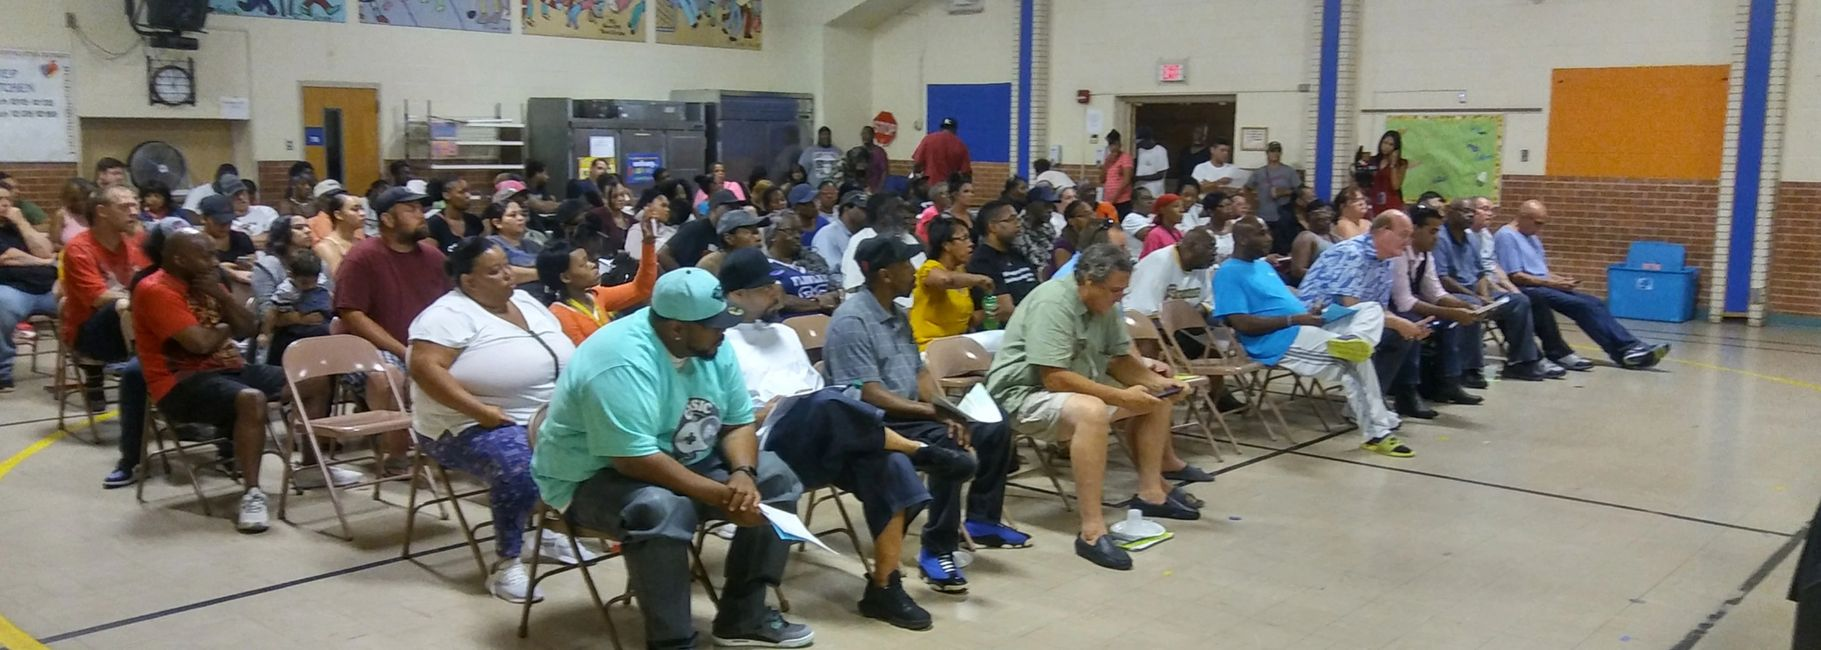 Over 300 people came on August 24th, 2019 to learn how to get their driver's license reinstated.